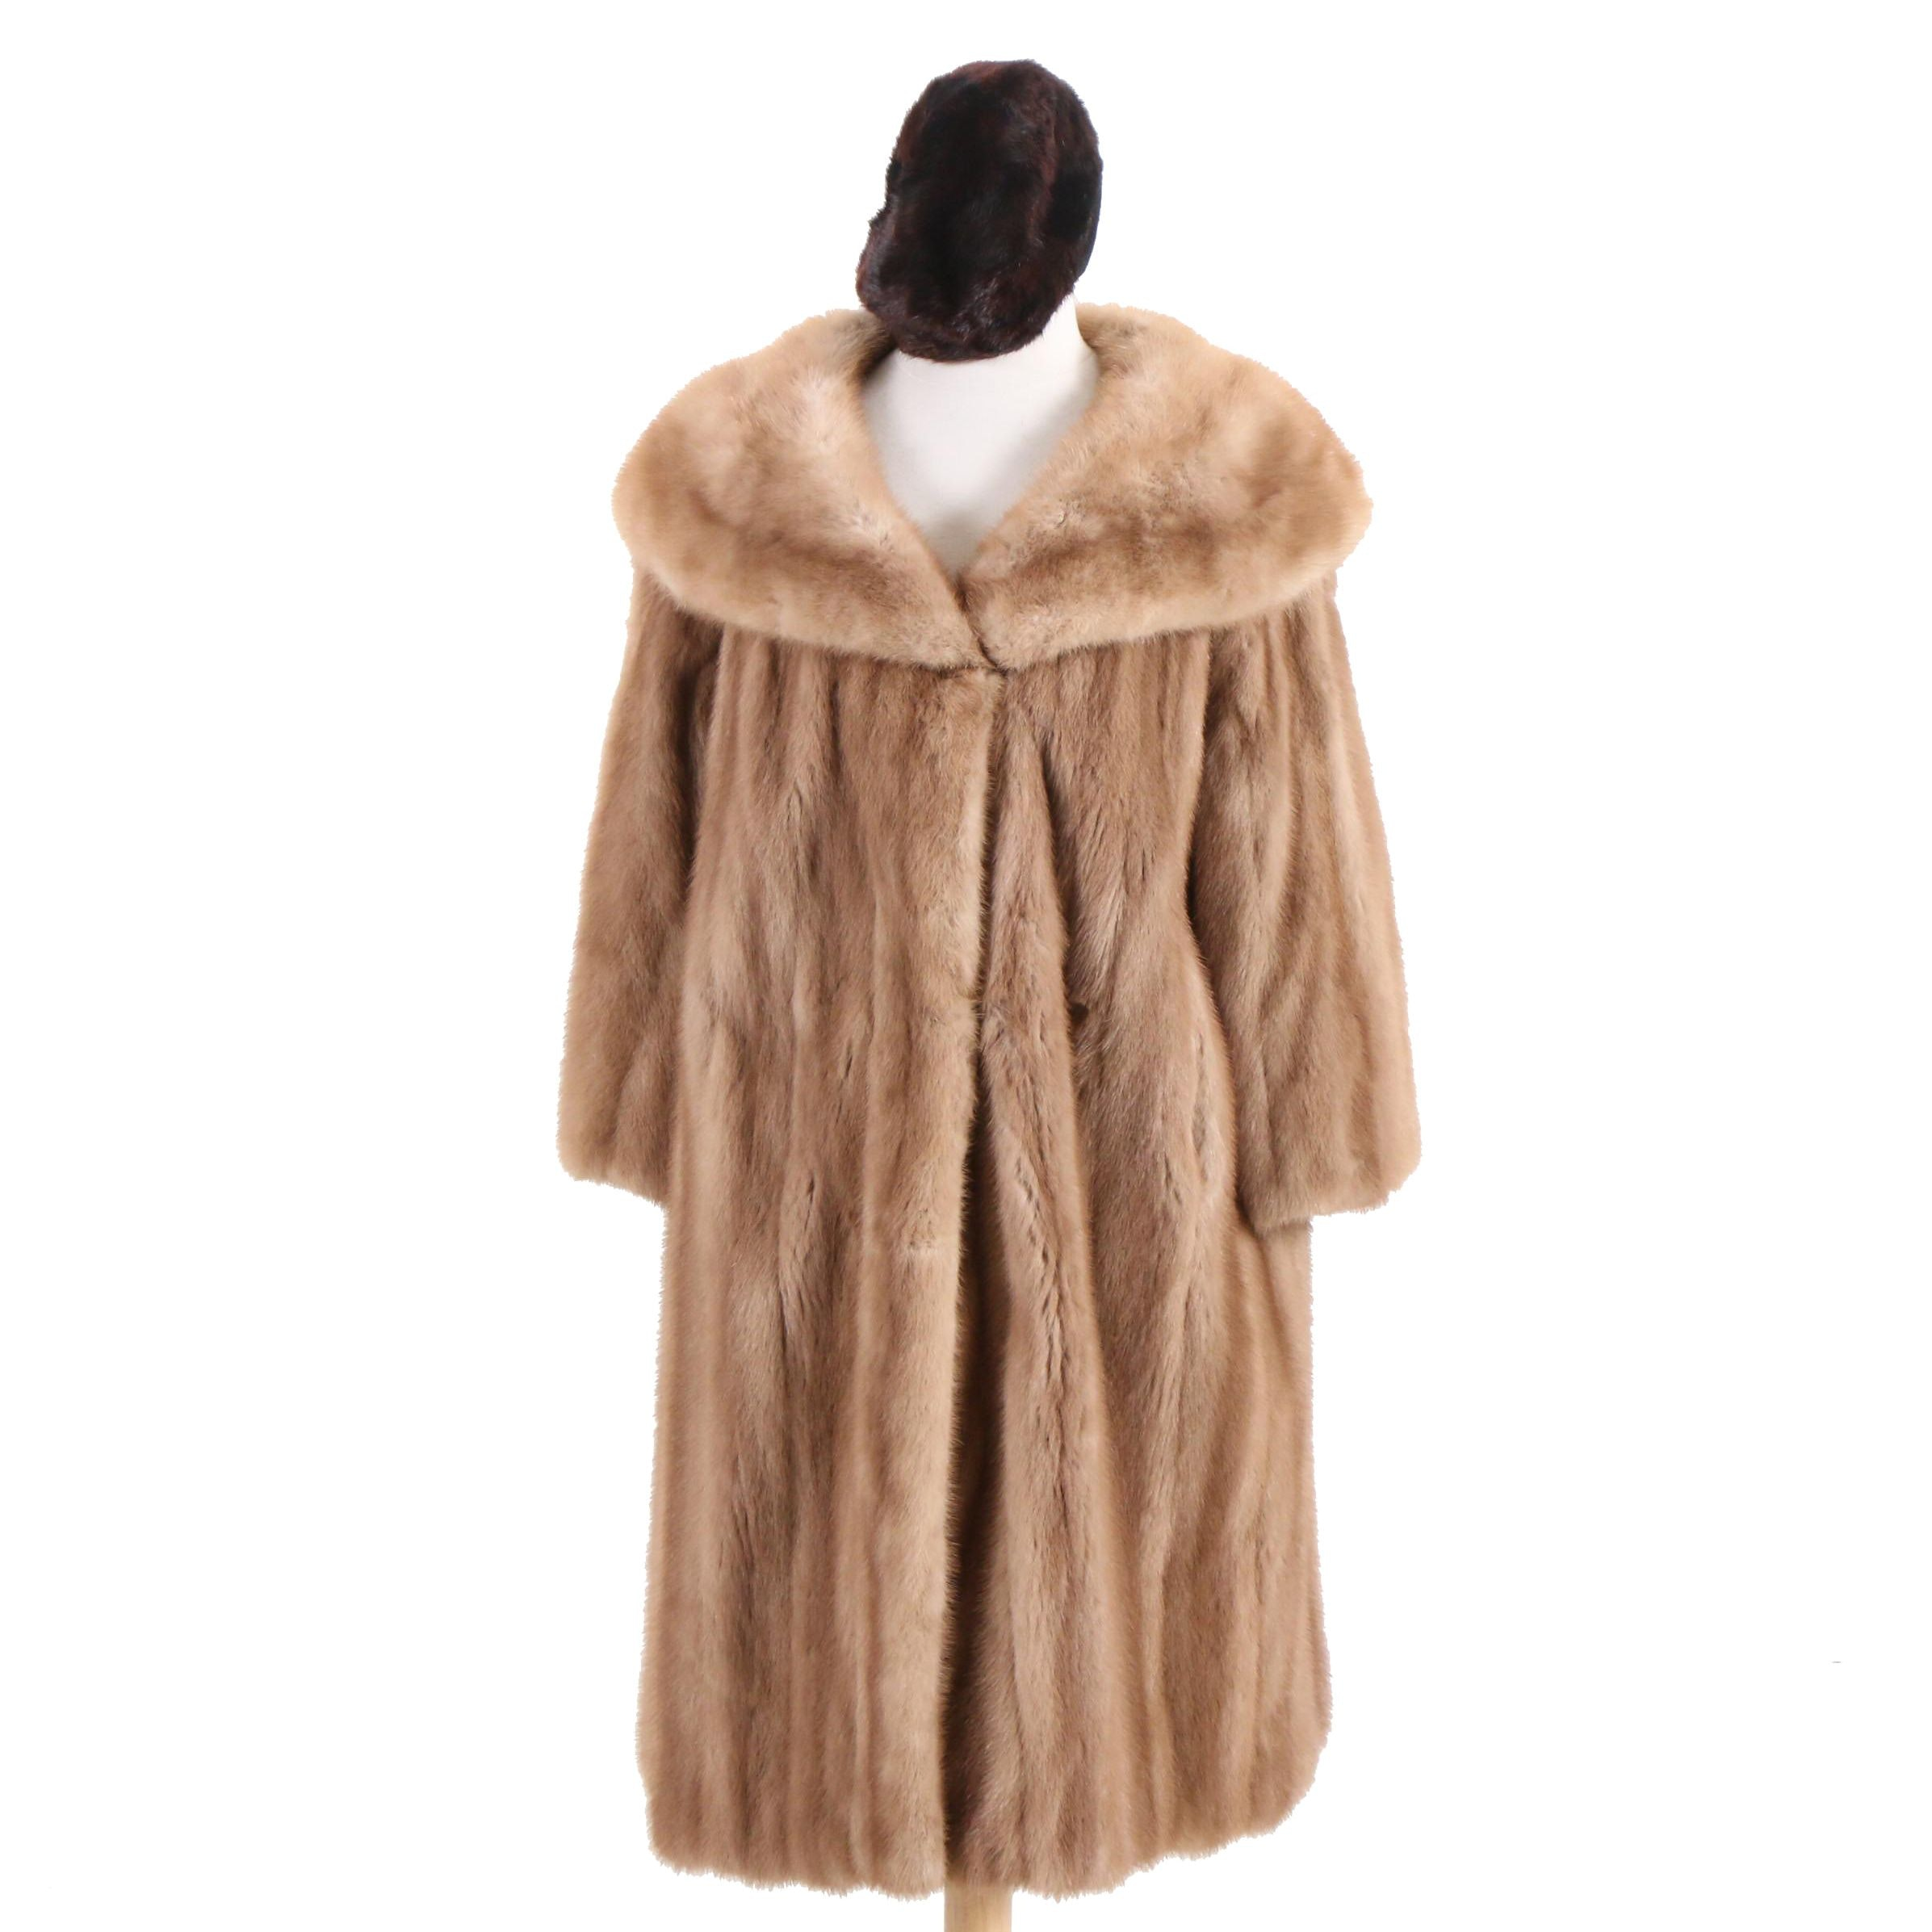 A.E. Burkhardt Co. Mink Fur Coat and Shillito's Mink Fur Hat, Vintage